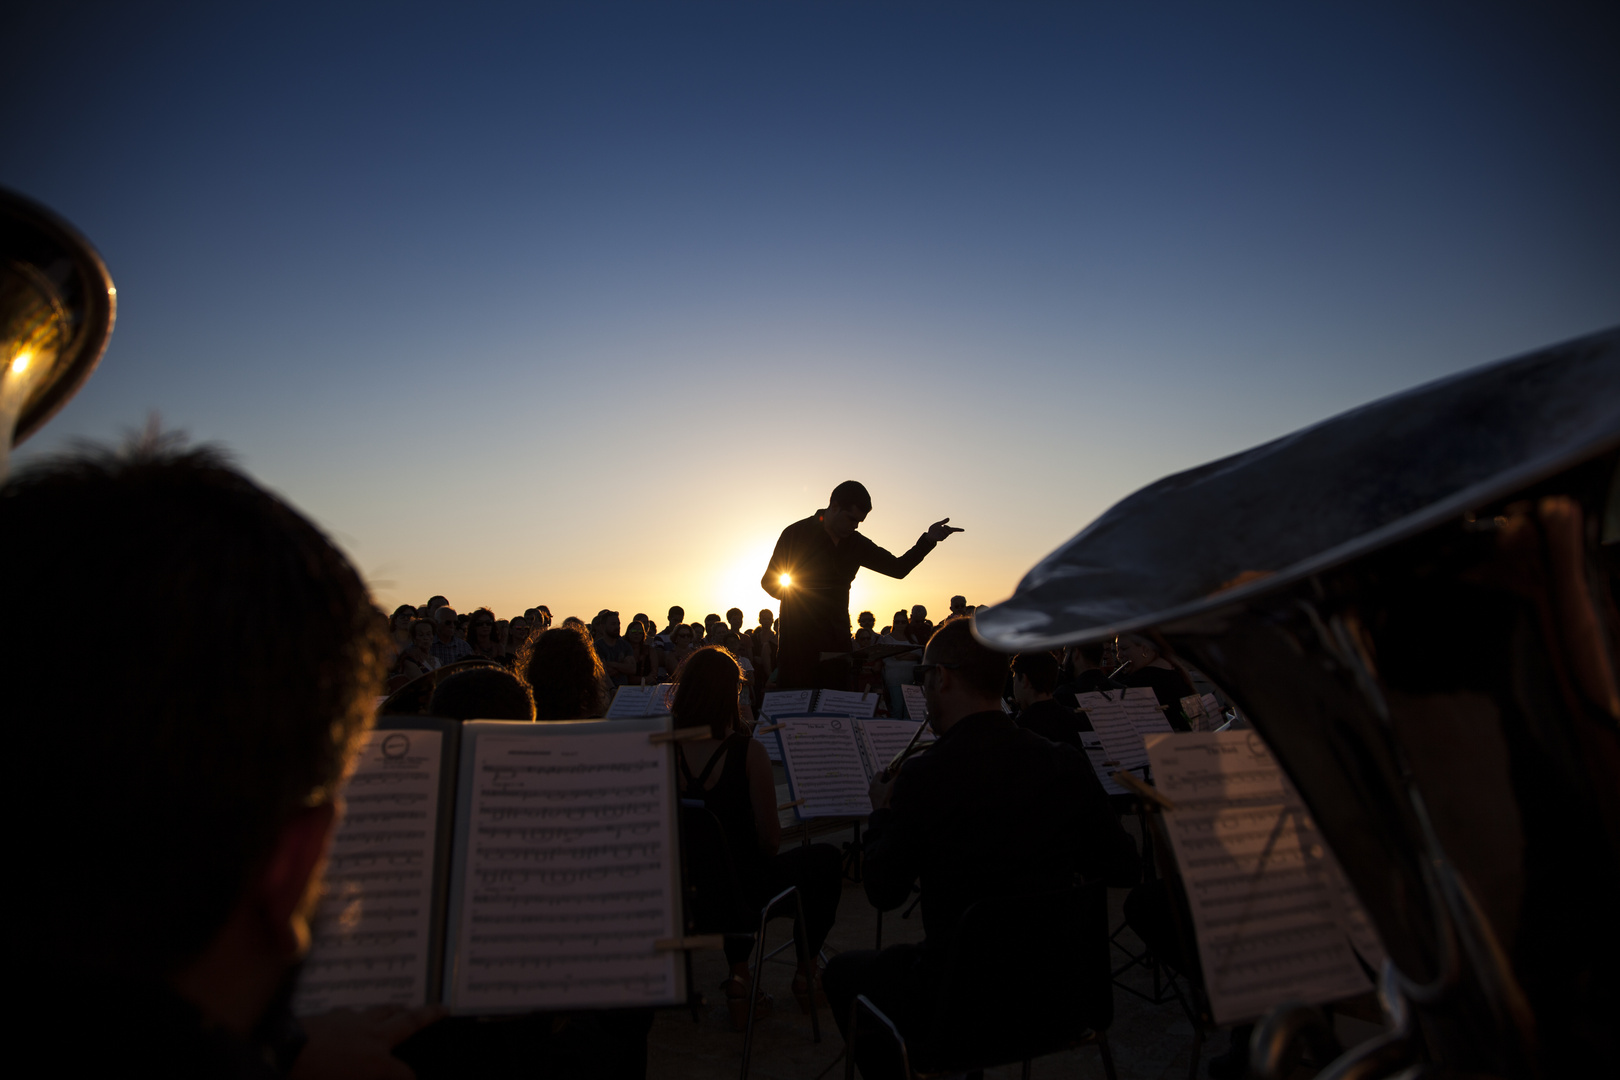 Philharmonic orchestra concert at sunset in southern Spain